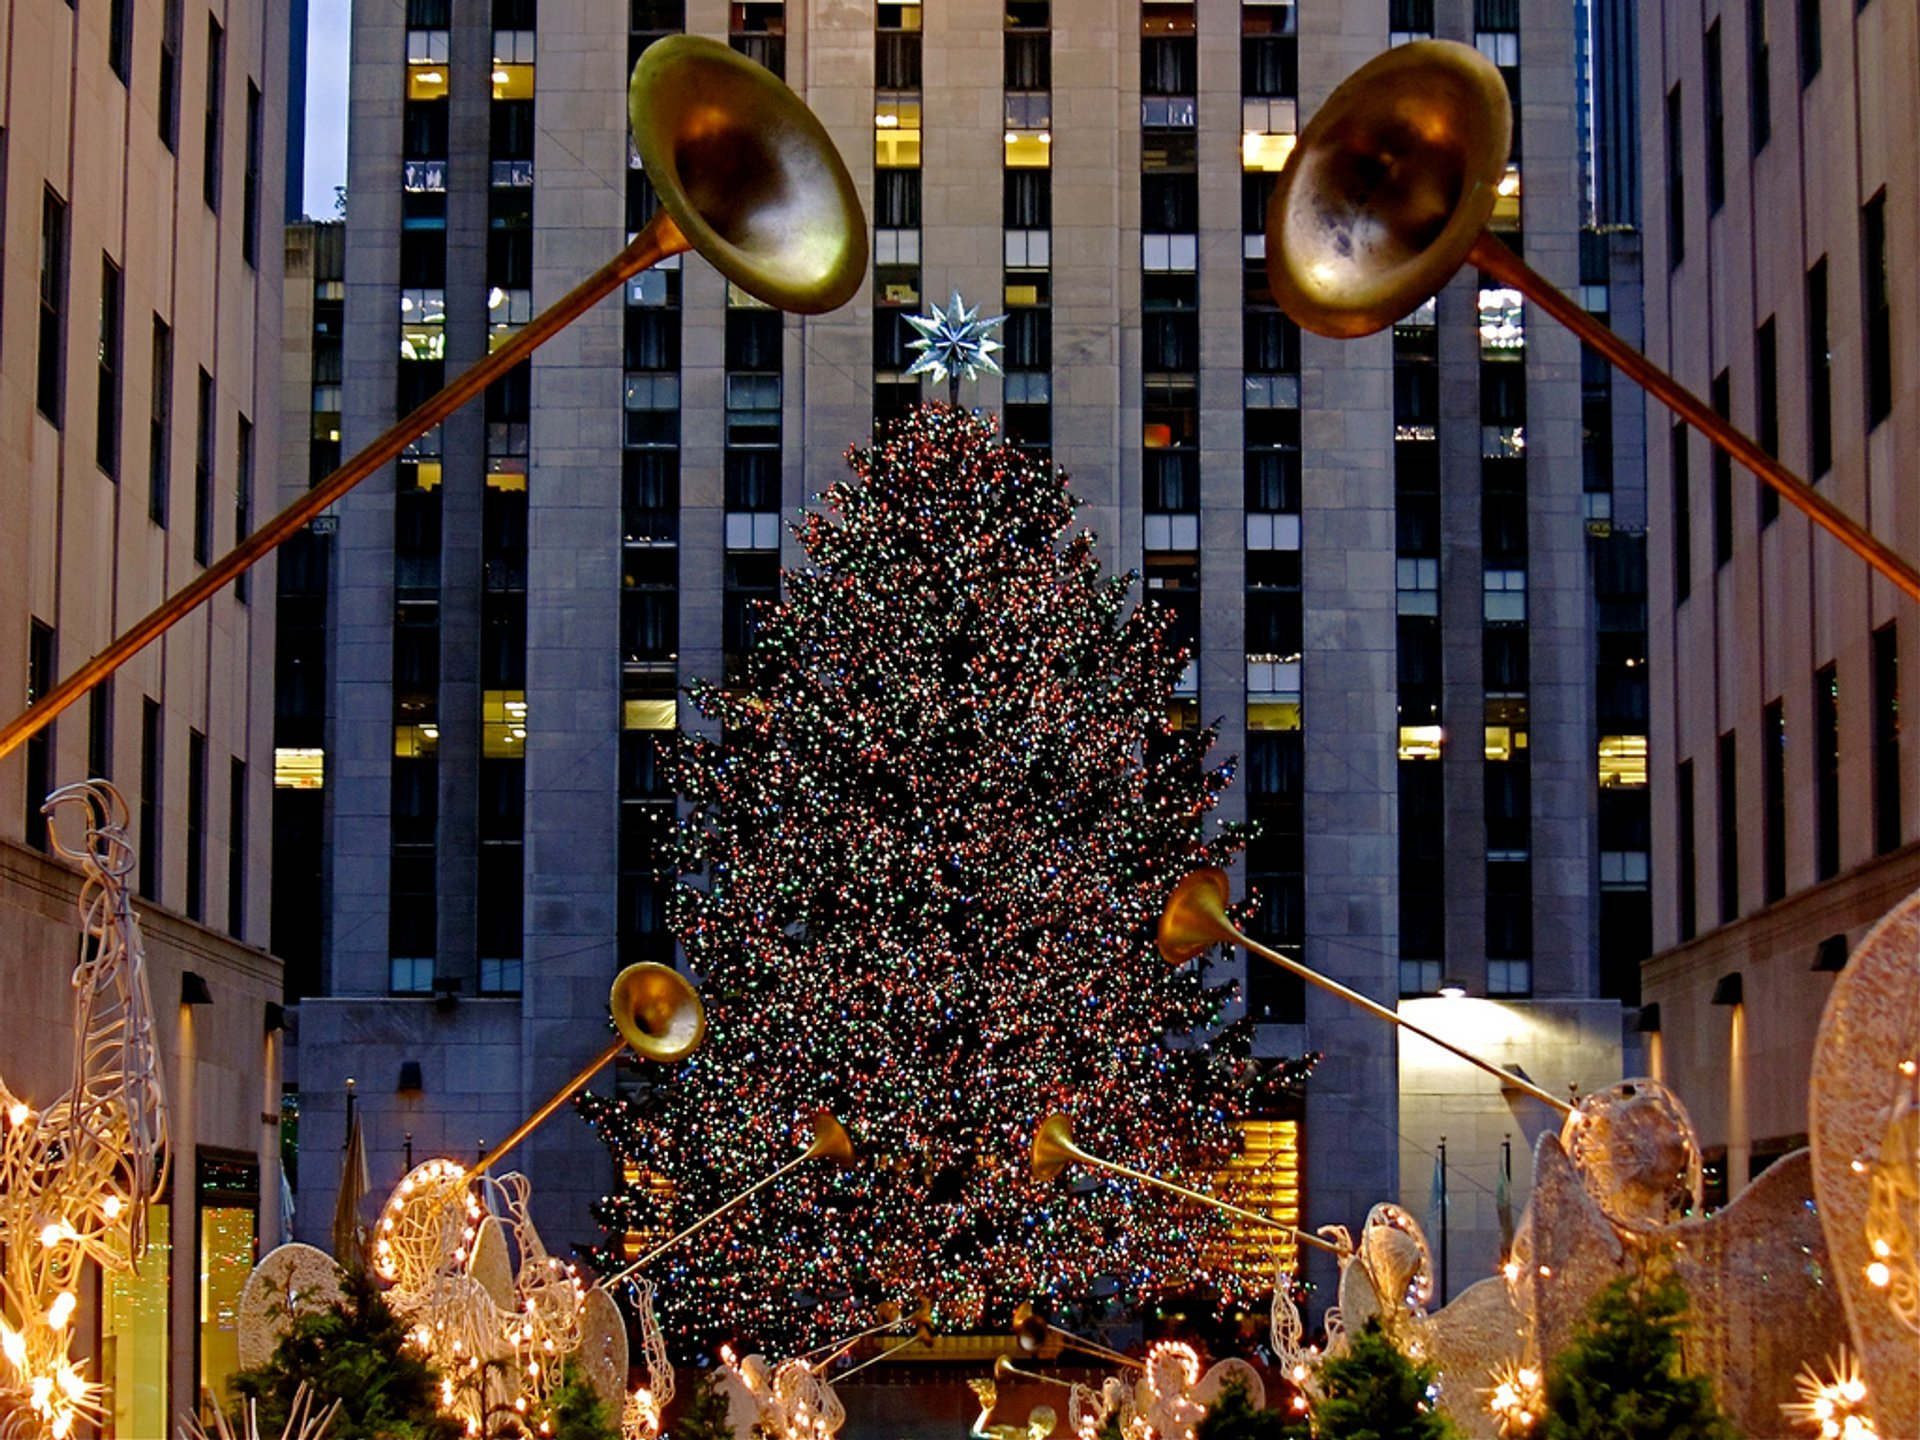 Christmas Ny 2019.Rockefeller Center Christmas Tree 2019 2020 In New York